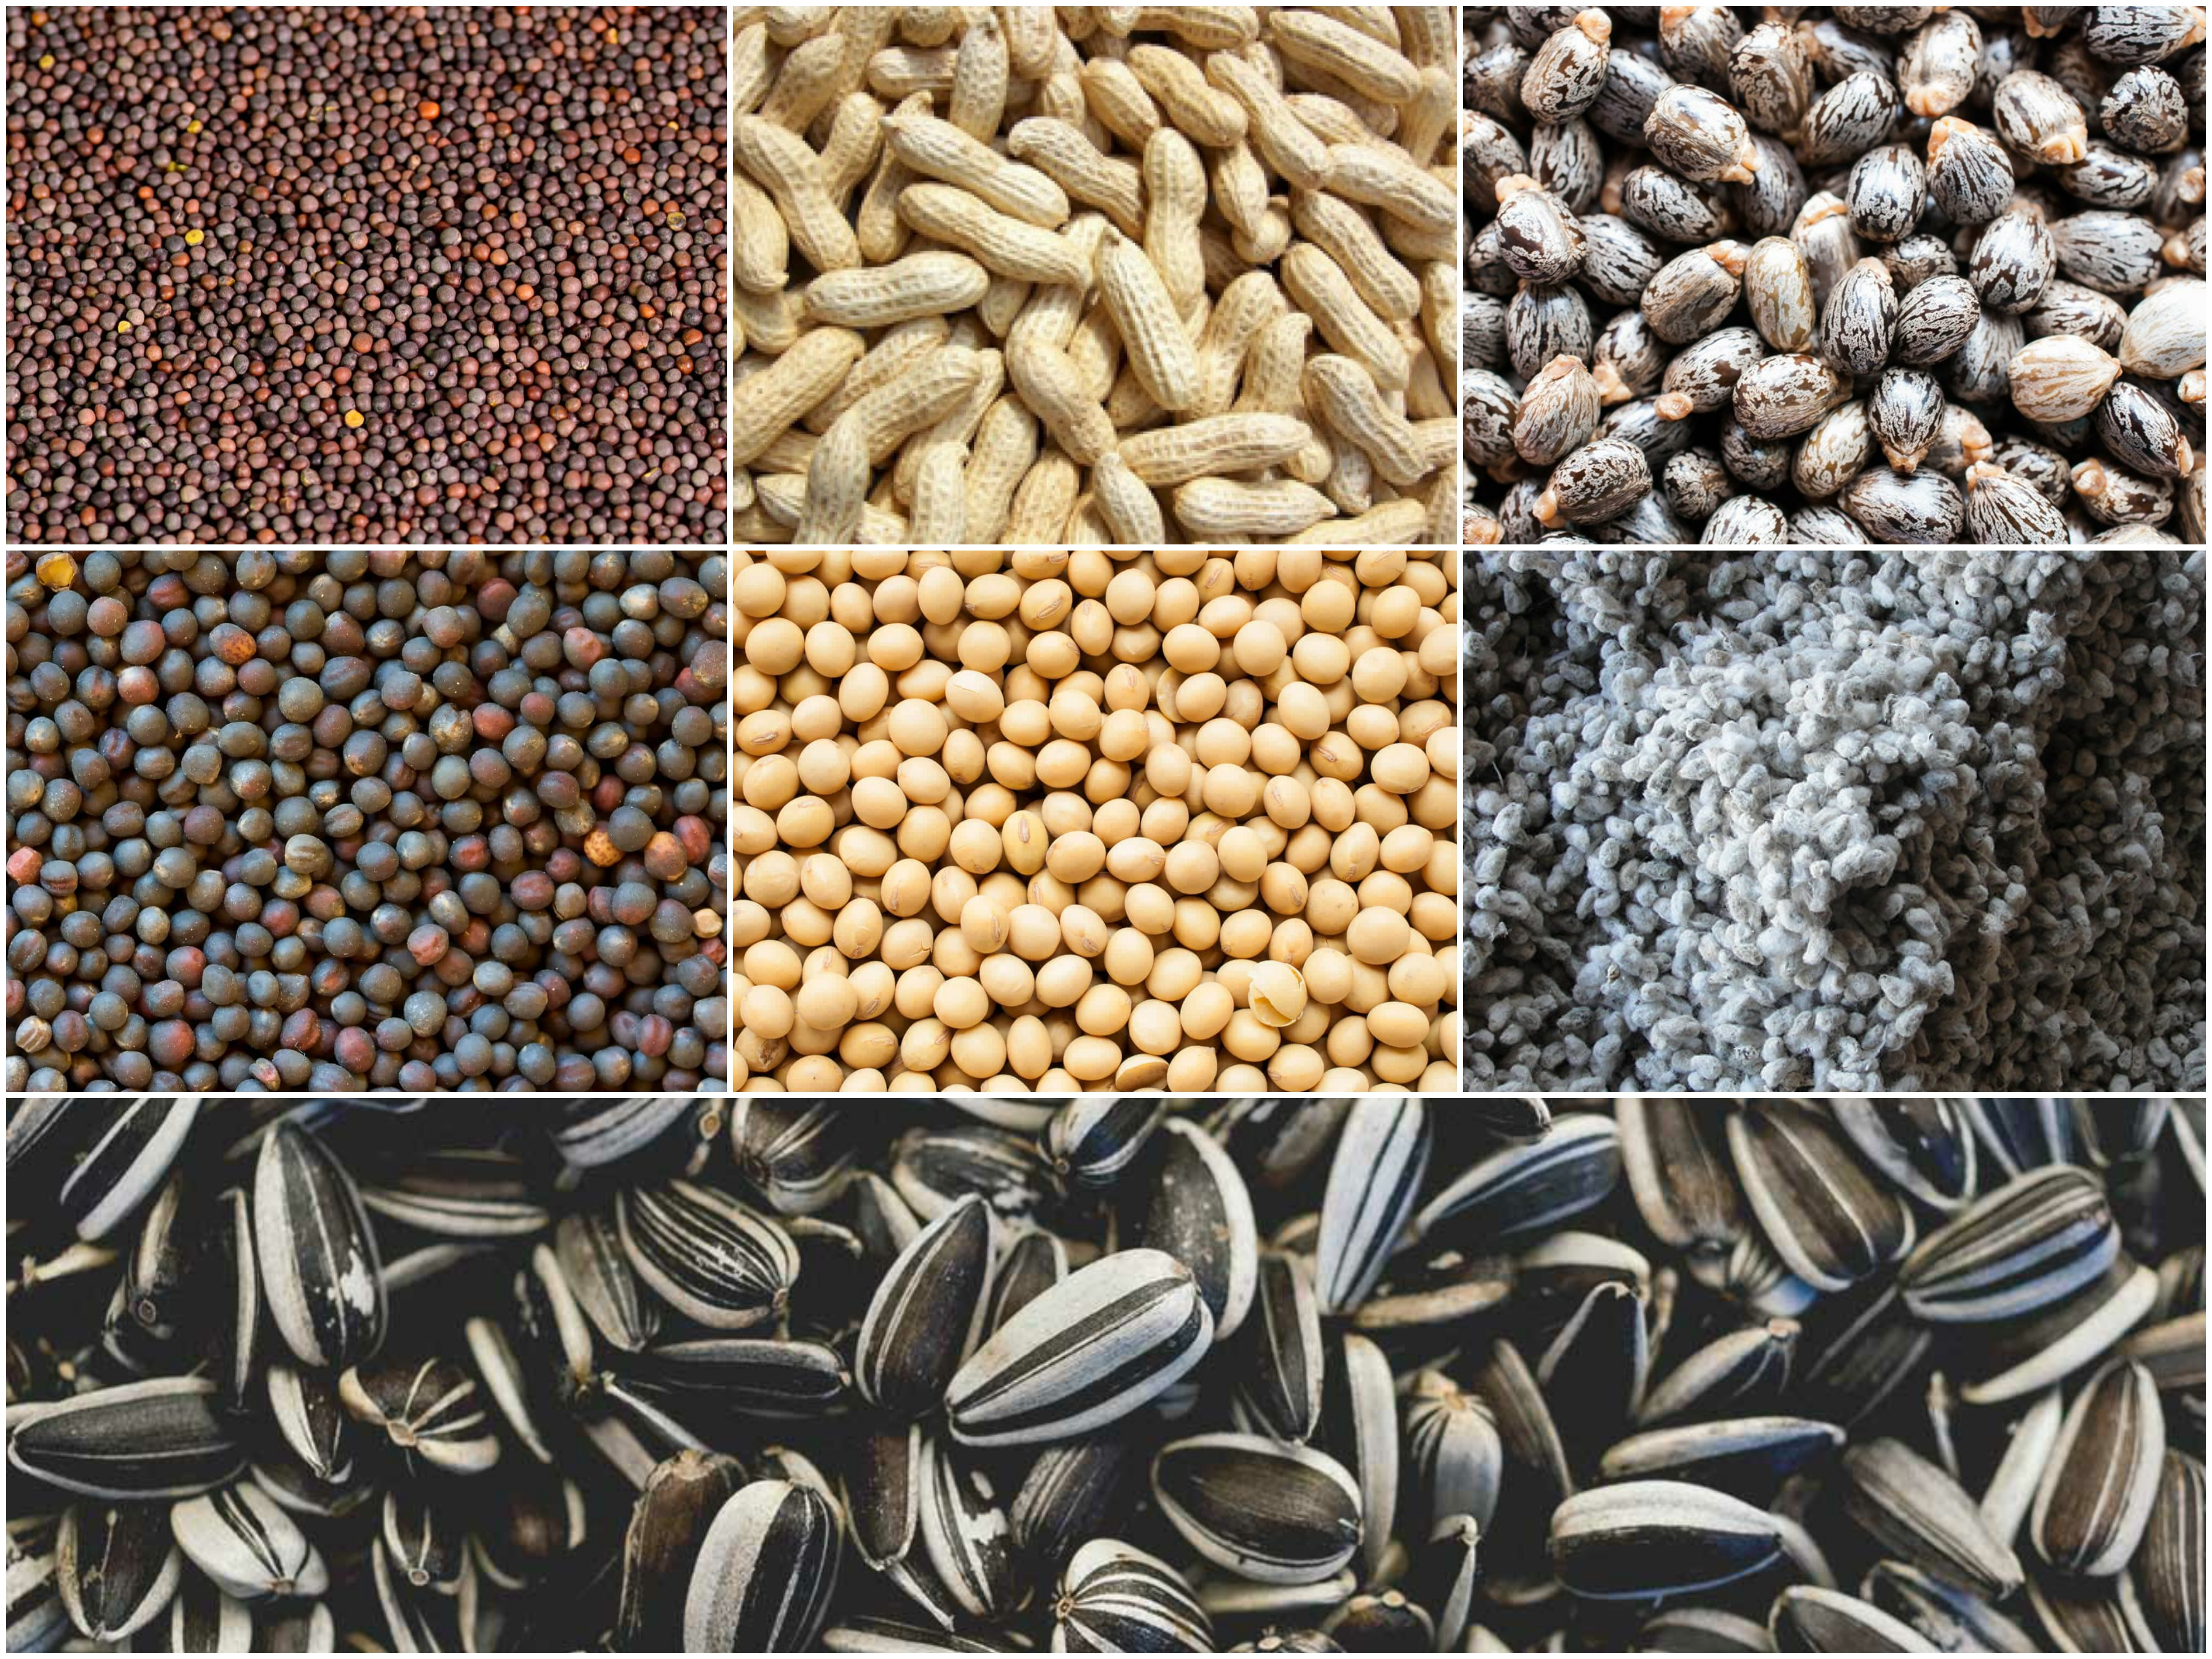 Rapeseed, Groundnut, Castor seed, Mustered Seed, Soyabean, Cotton seed, Sunflower seed